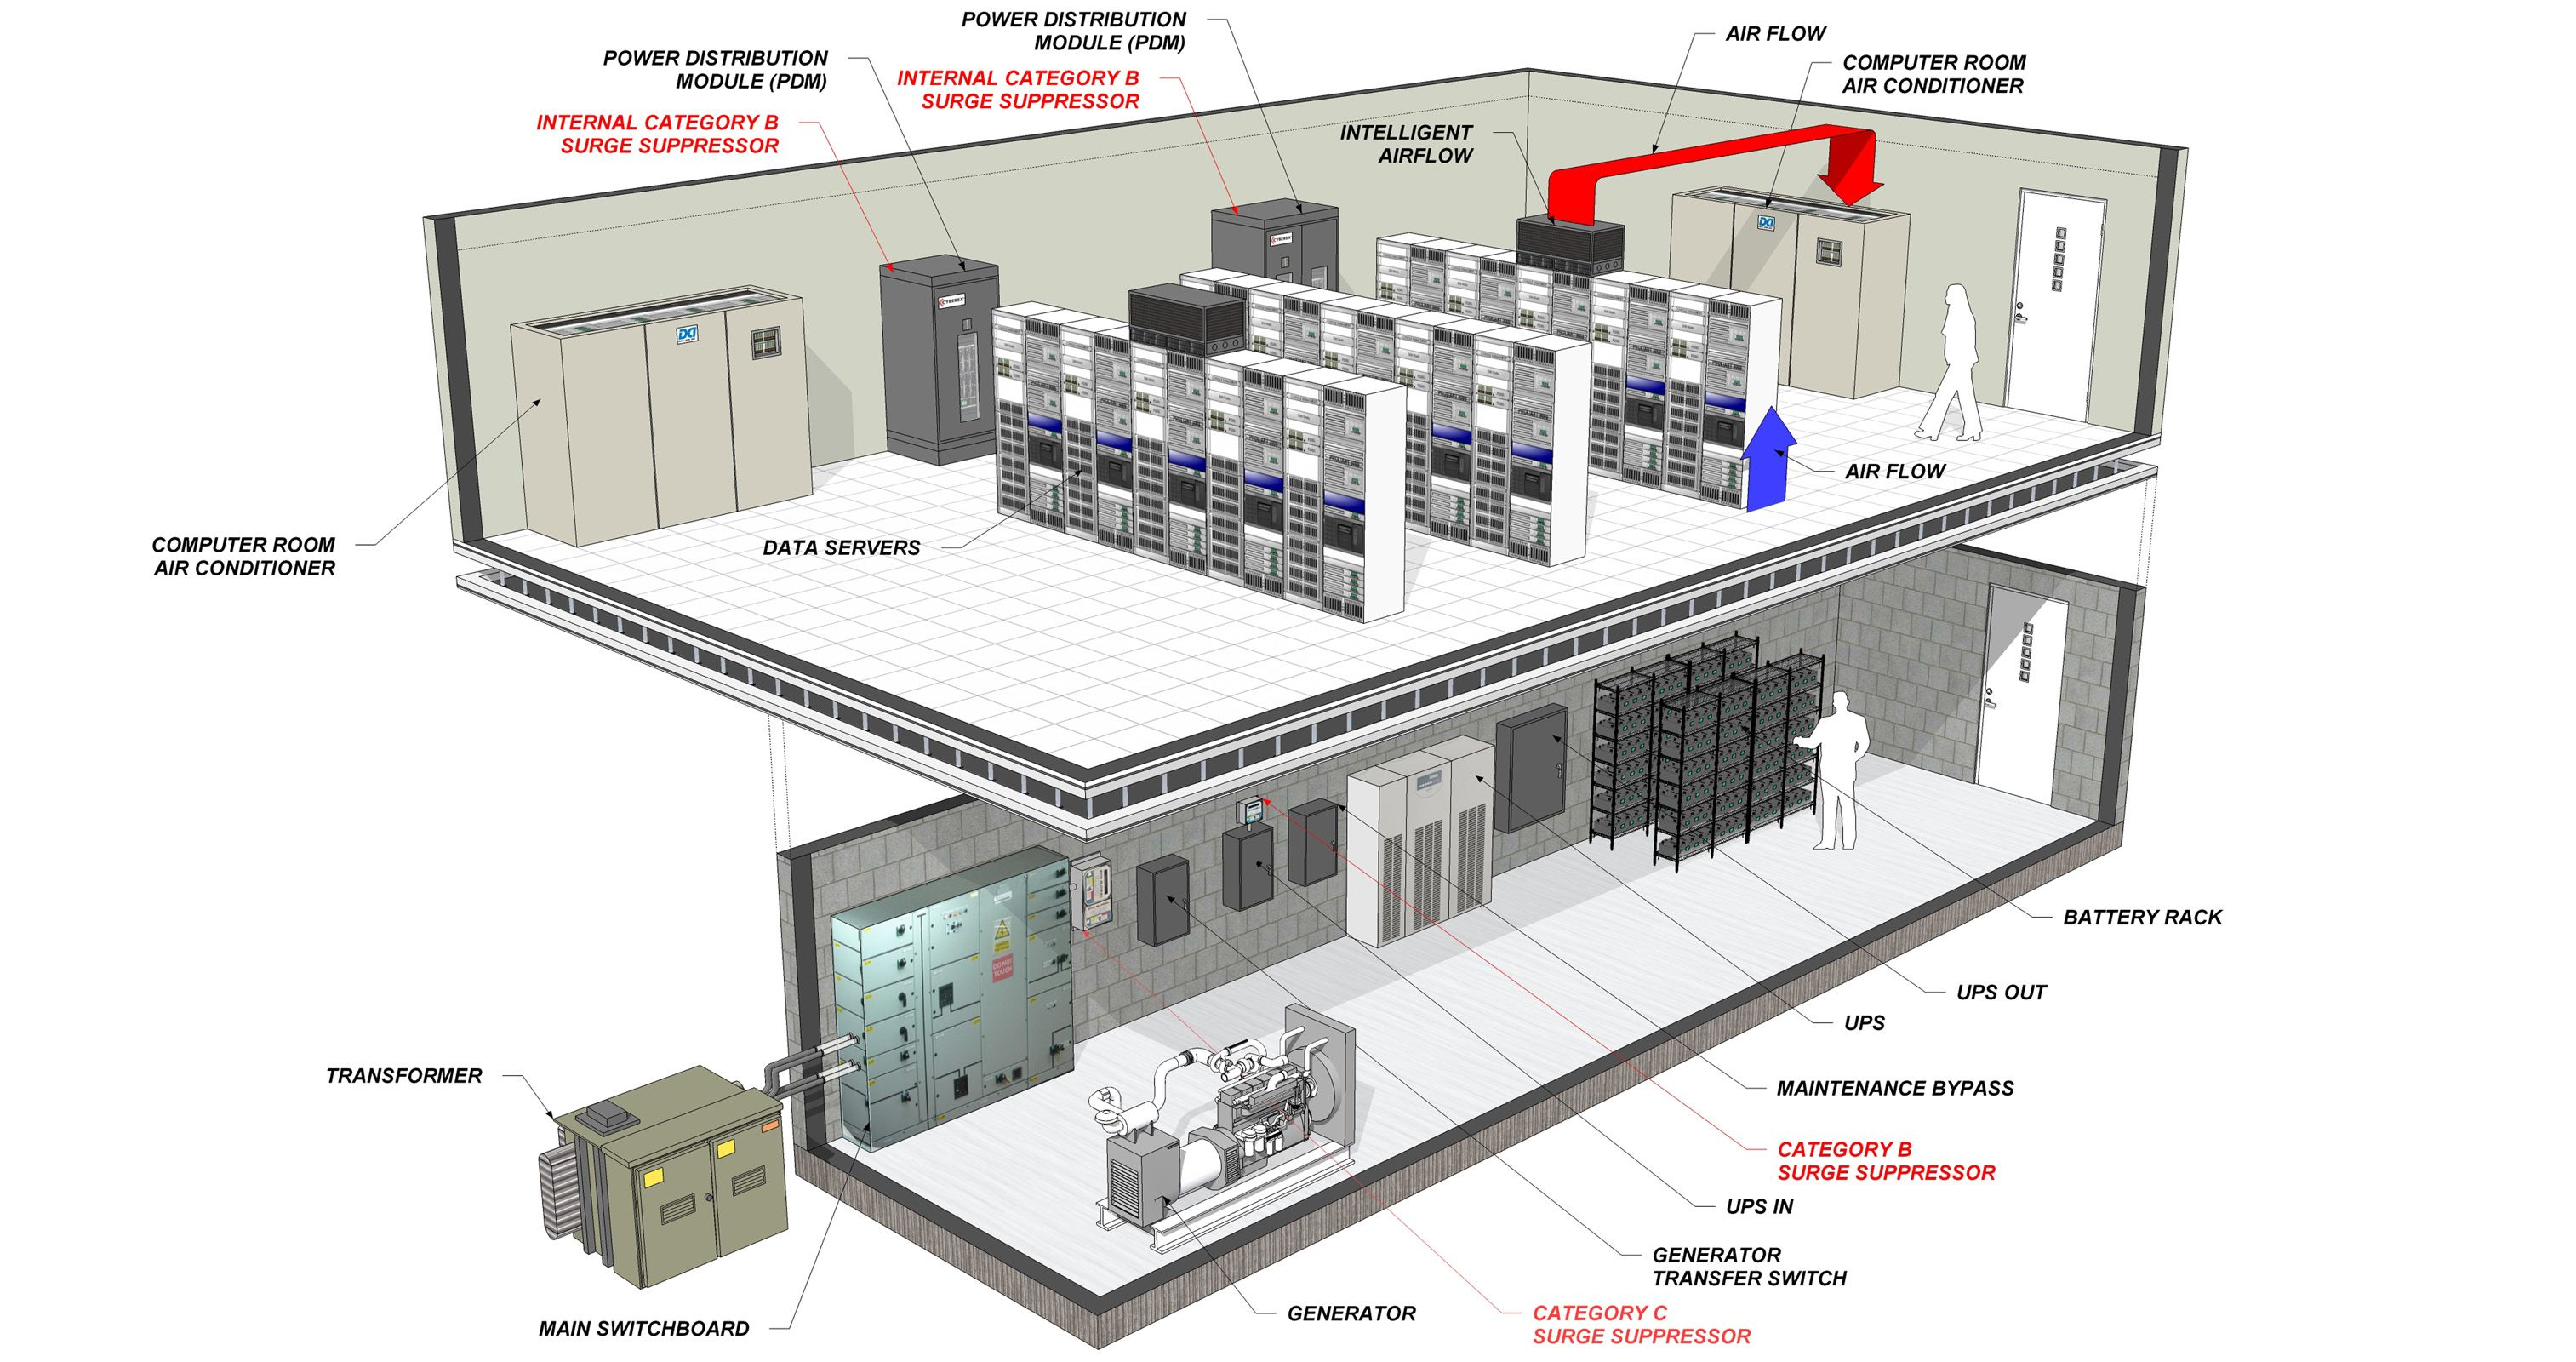 datacenter2 3027 1600 rsa studio